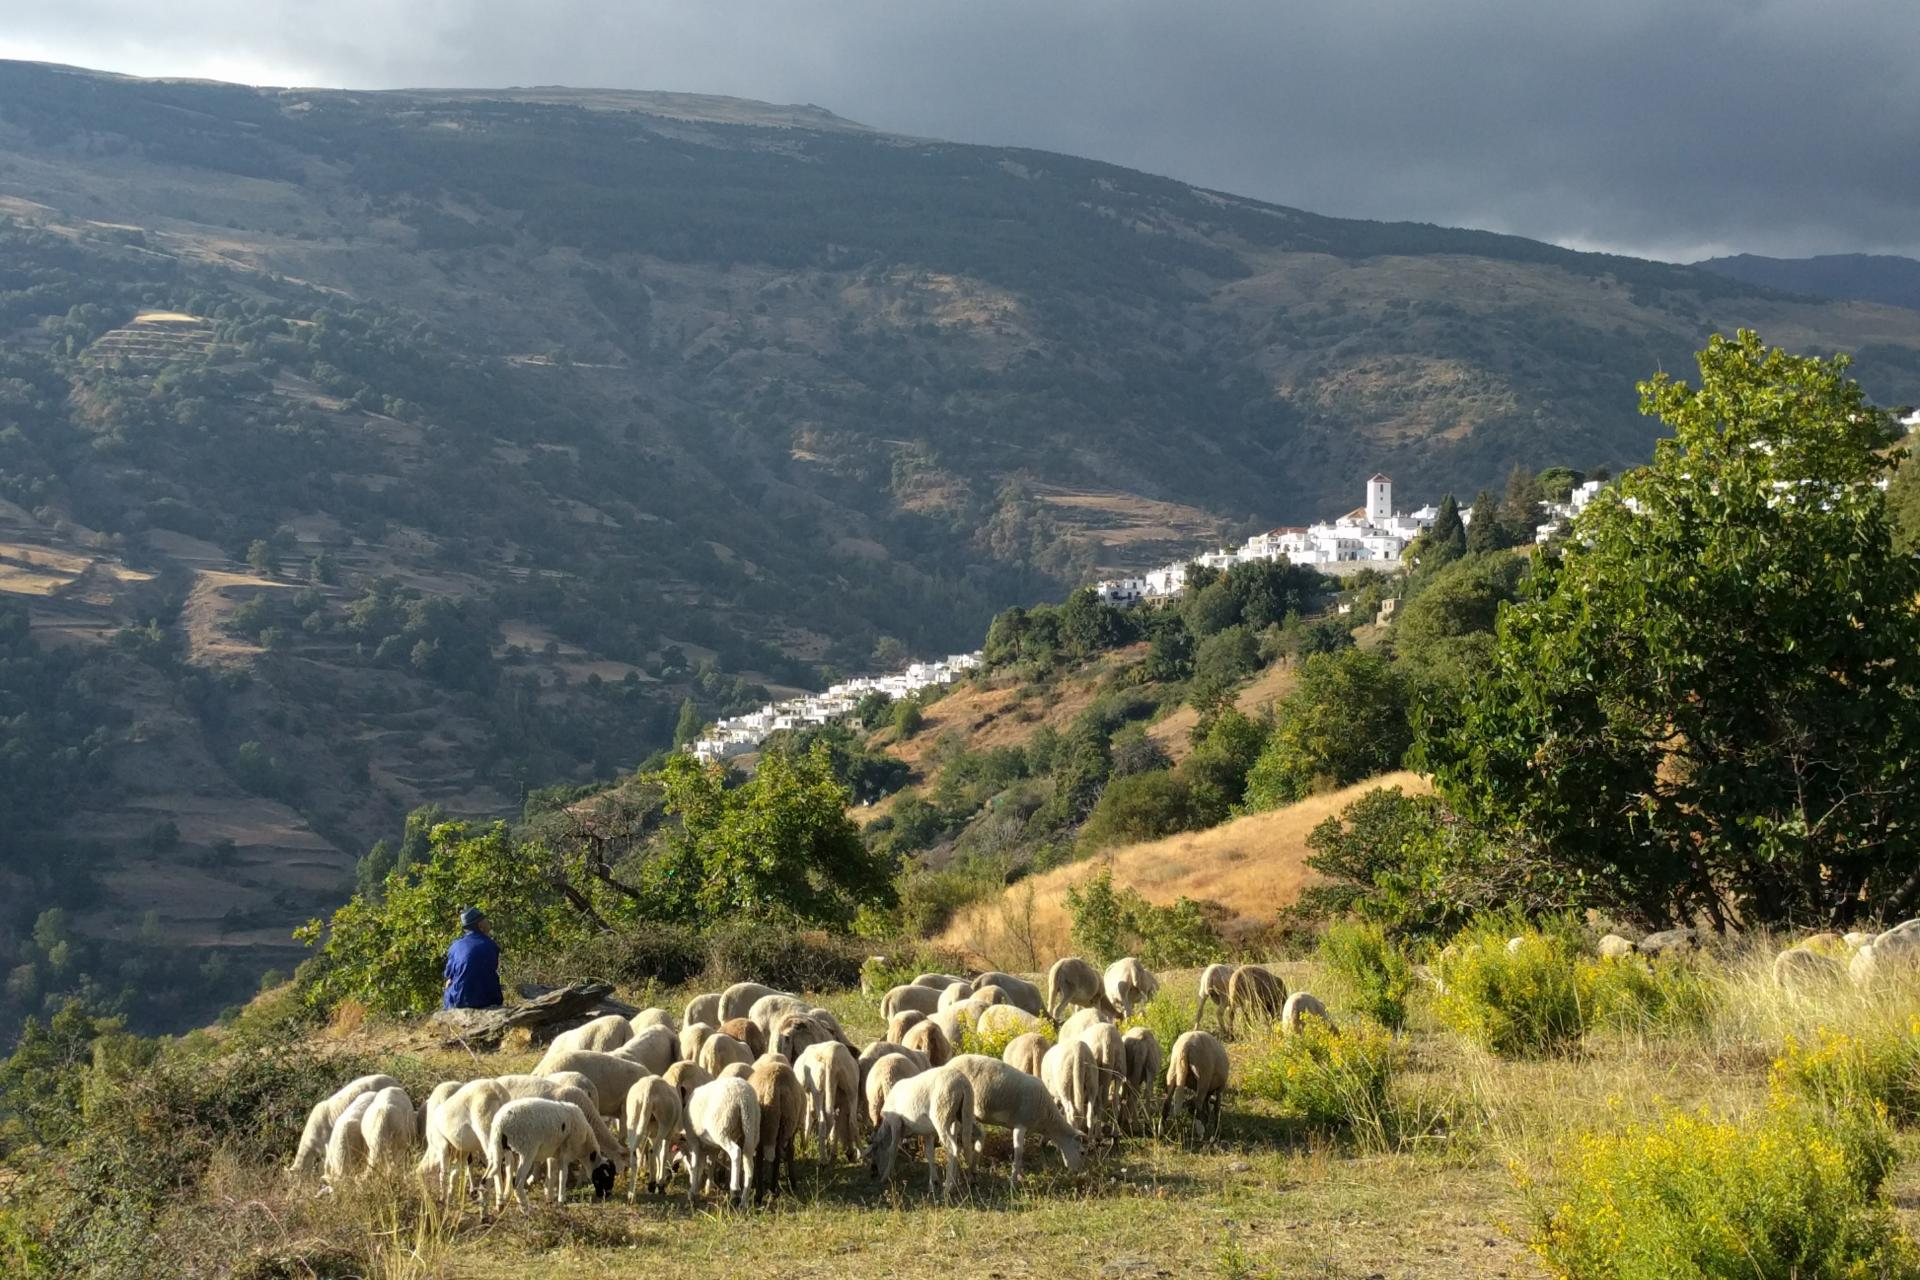 Flock of sheep in Andalusia